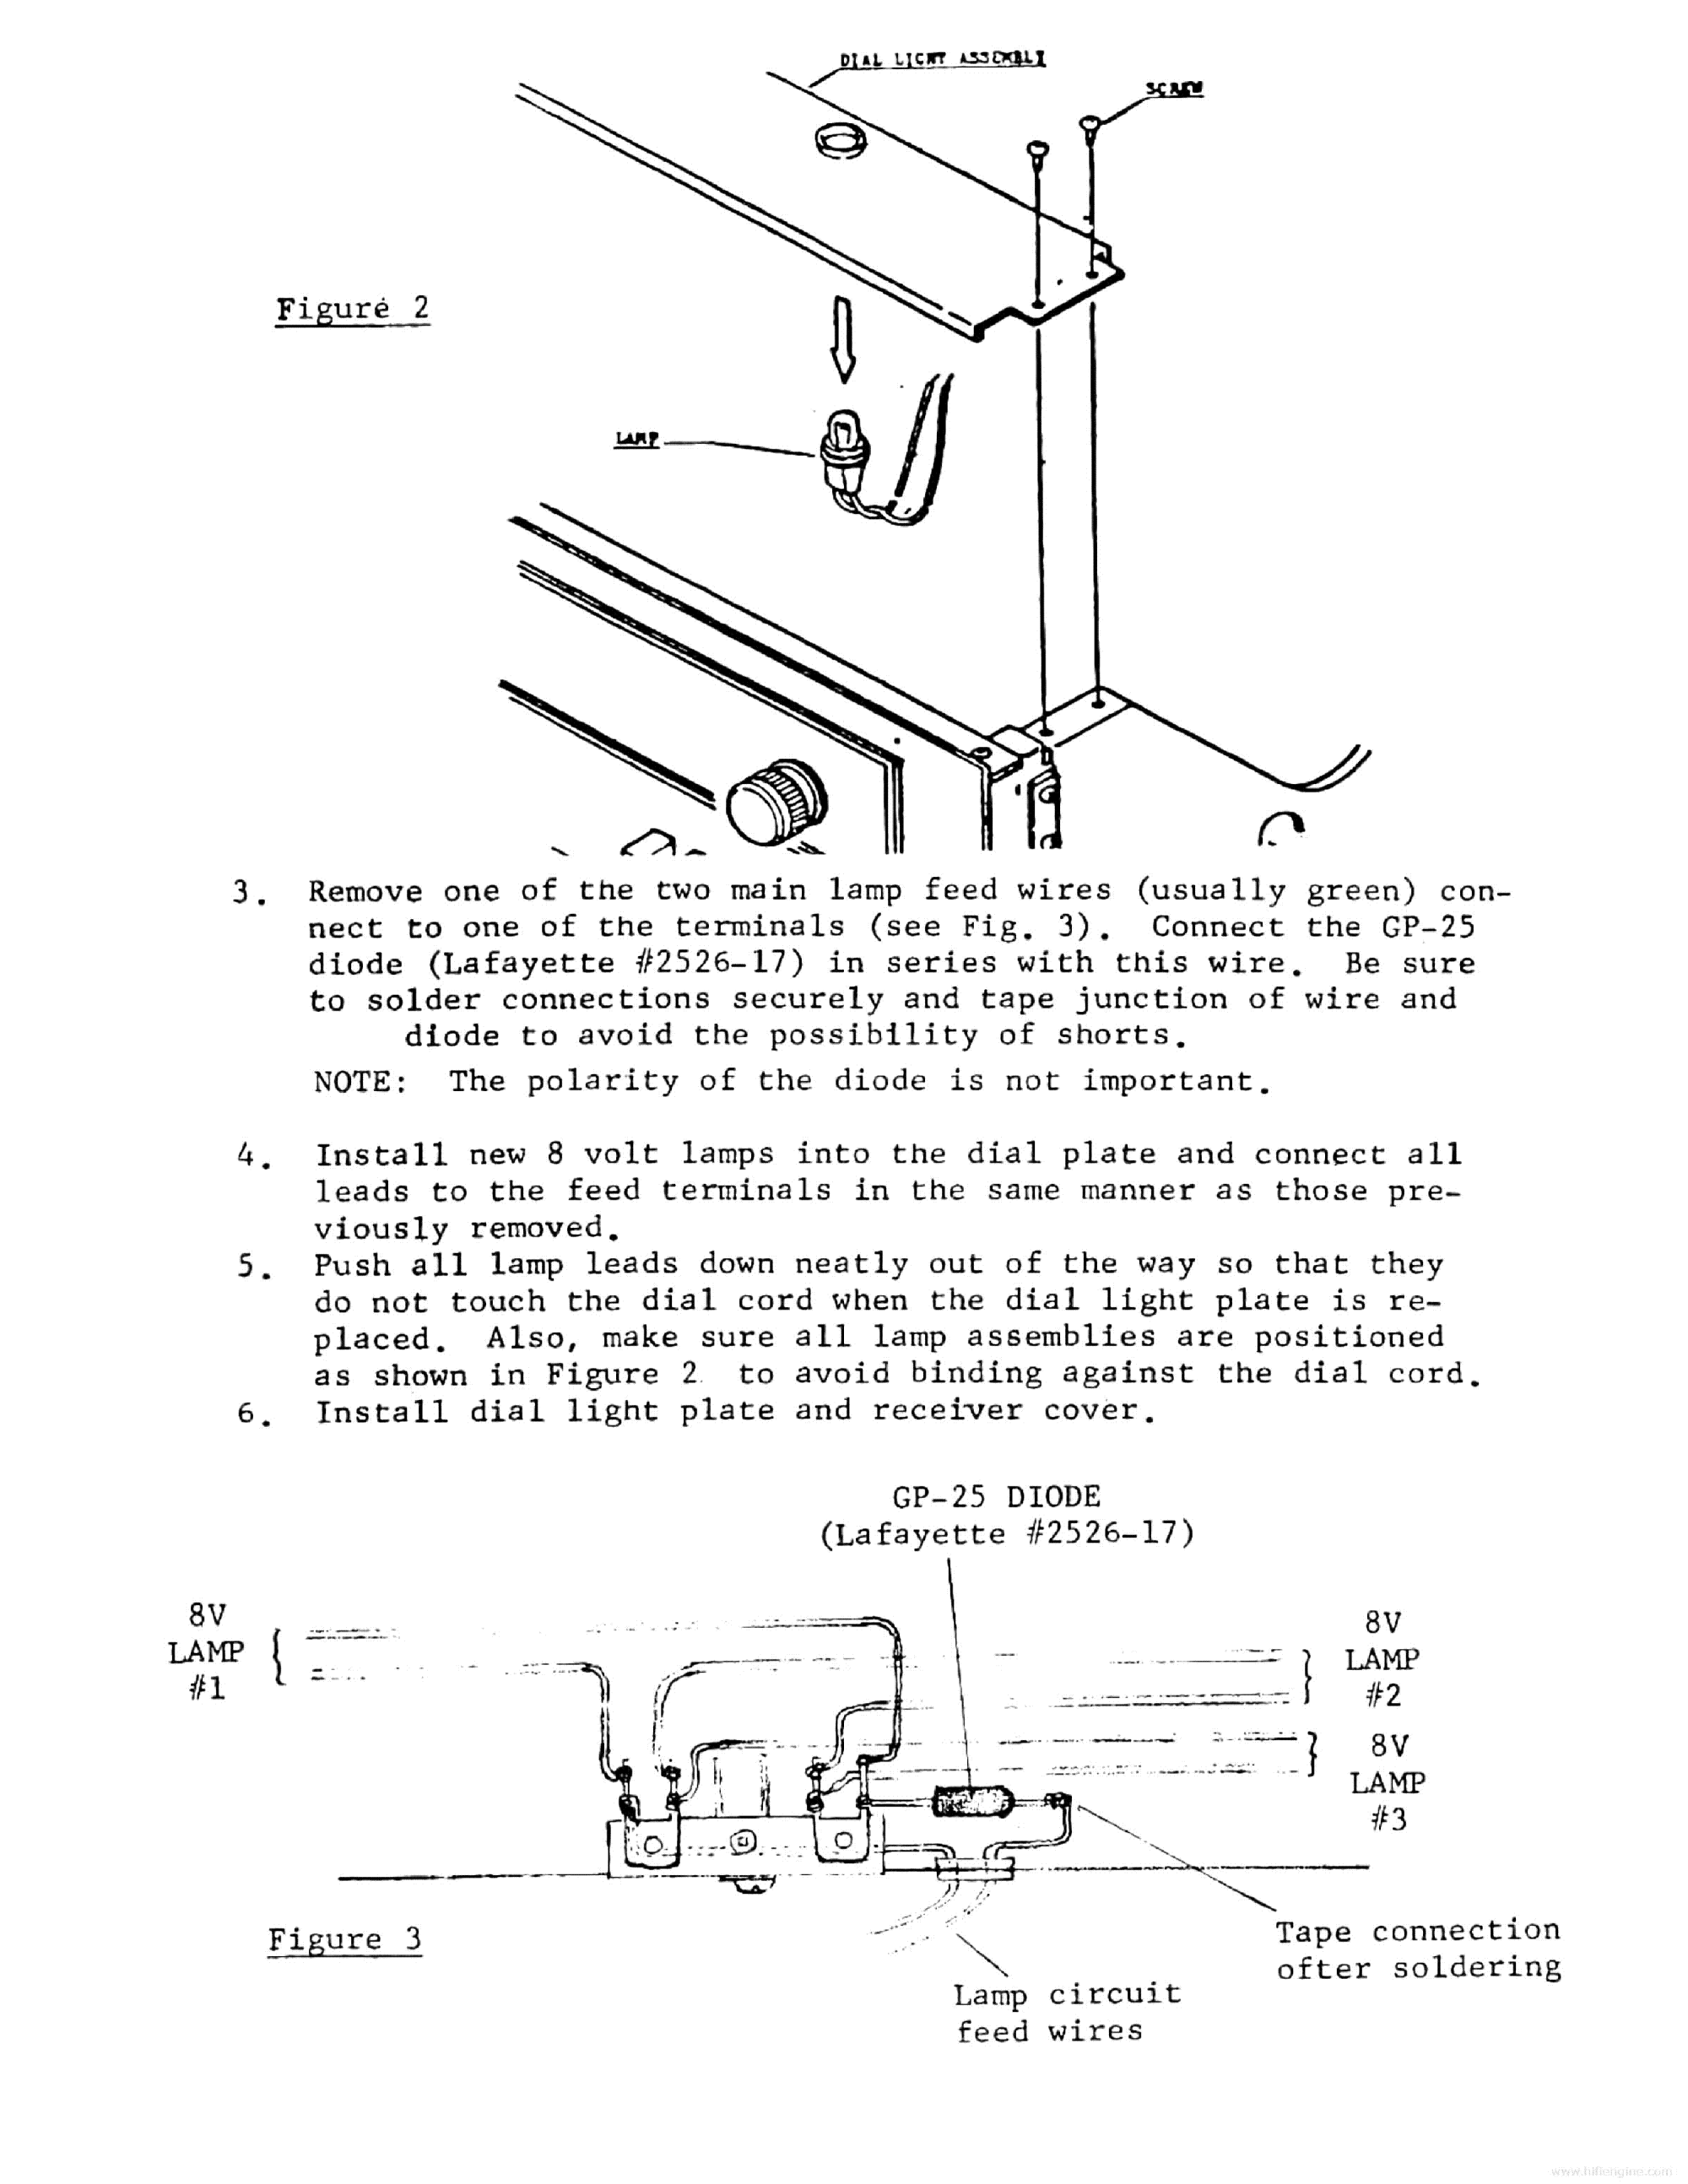 hight resolution of lafayette lr 1515a 2020a 3030a 5555a technical info service manual 2nd page